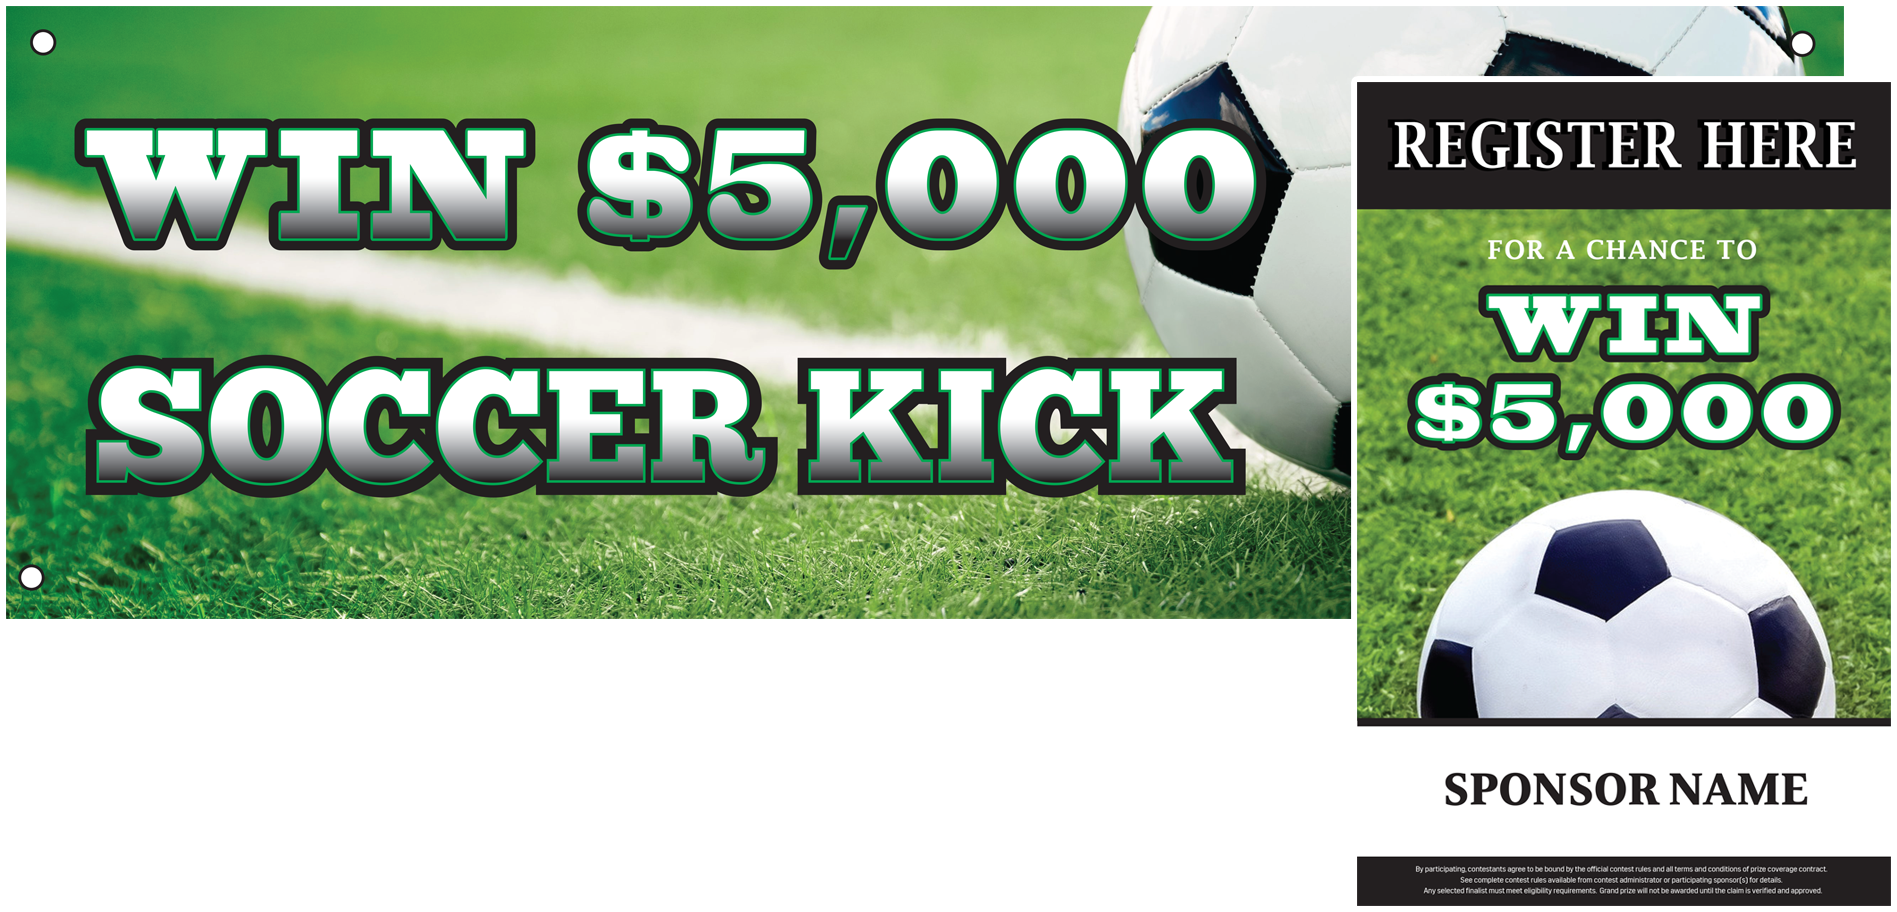 Truck Bed Soccer Kick - Grand Prize Promotions